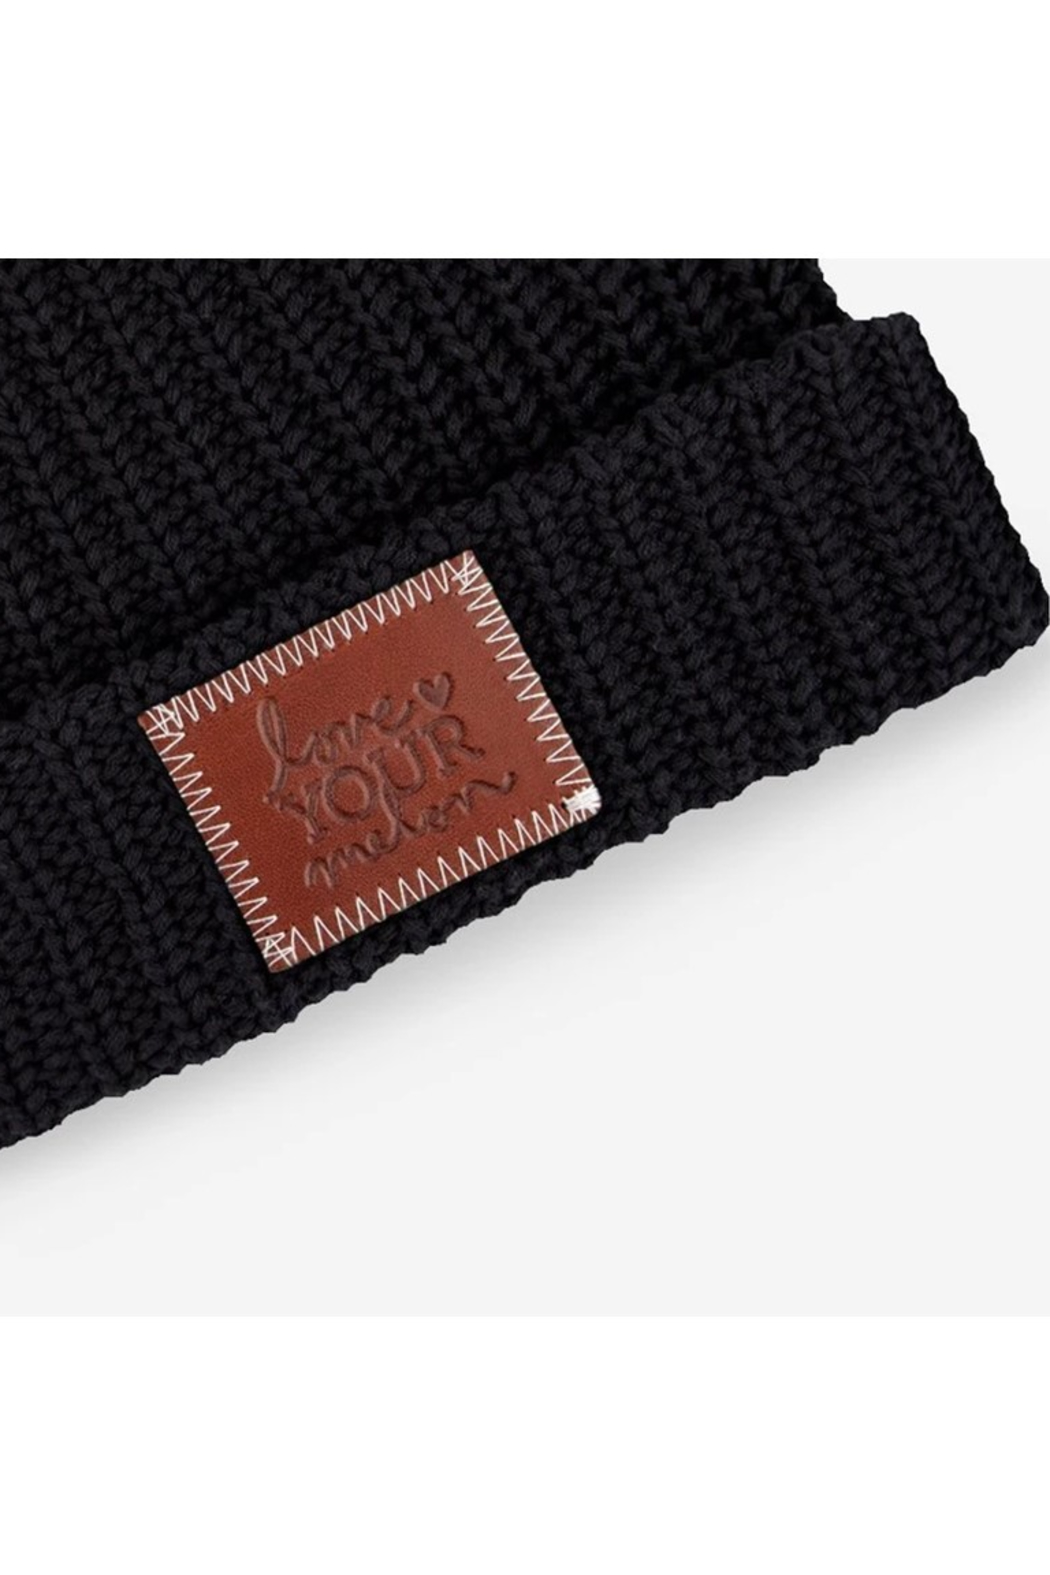 Love Your Melon Black Cuffed Beanie - Front Full Image